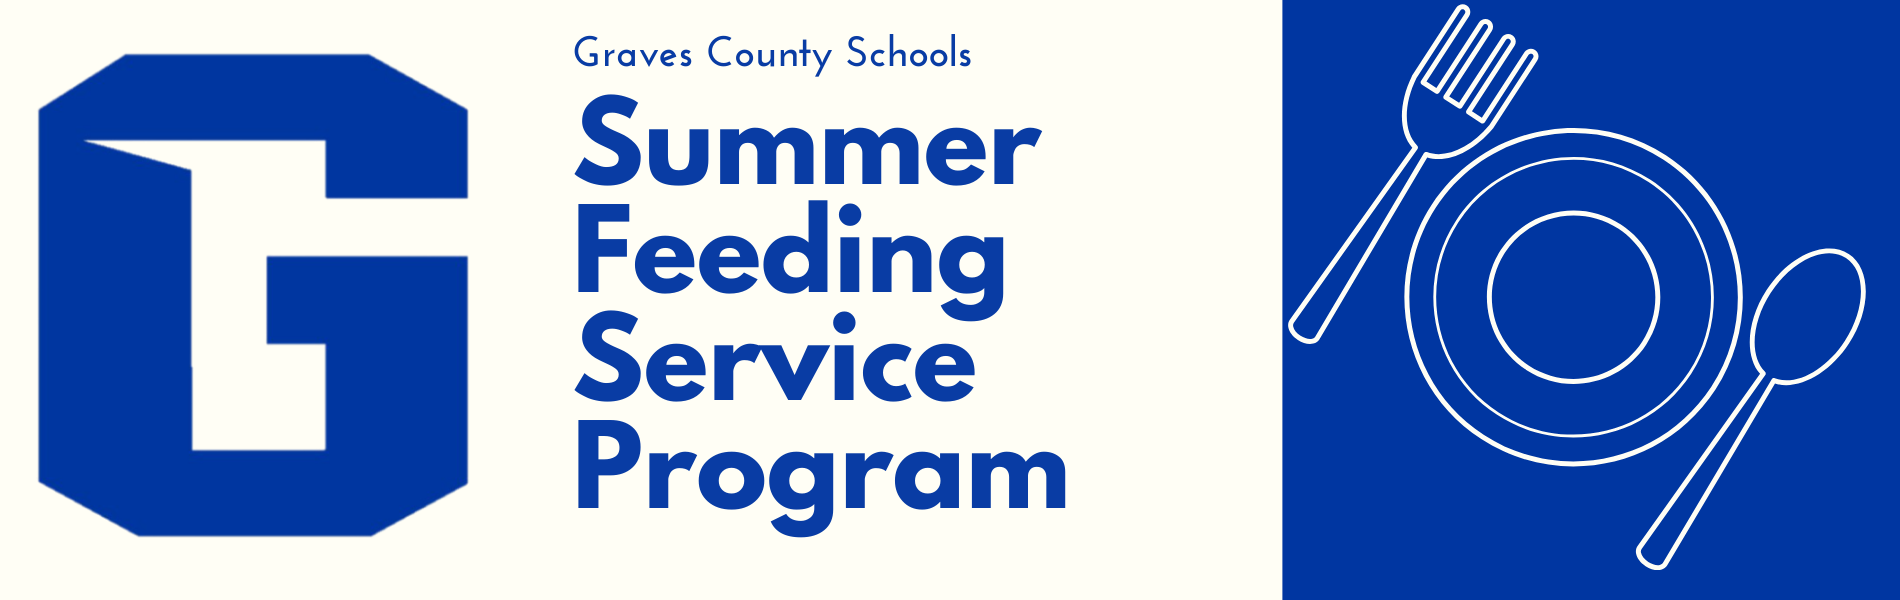 Sign up for Summer Feeding Service Program